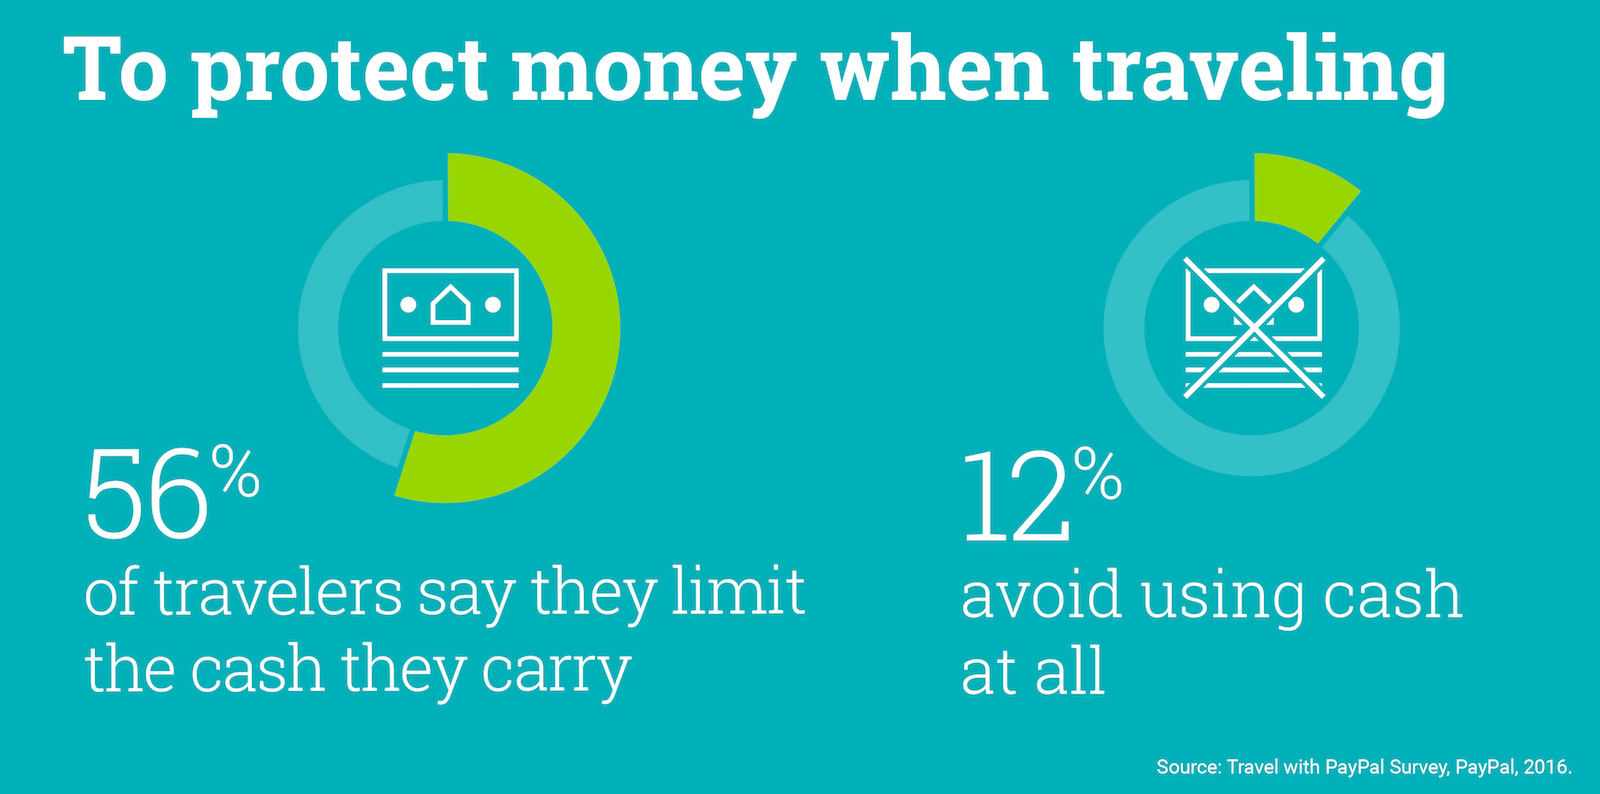 Travel-checklist-cash-brighthouse-financial Limit the cash you carry